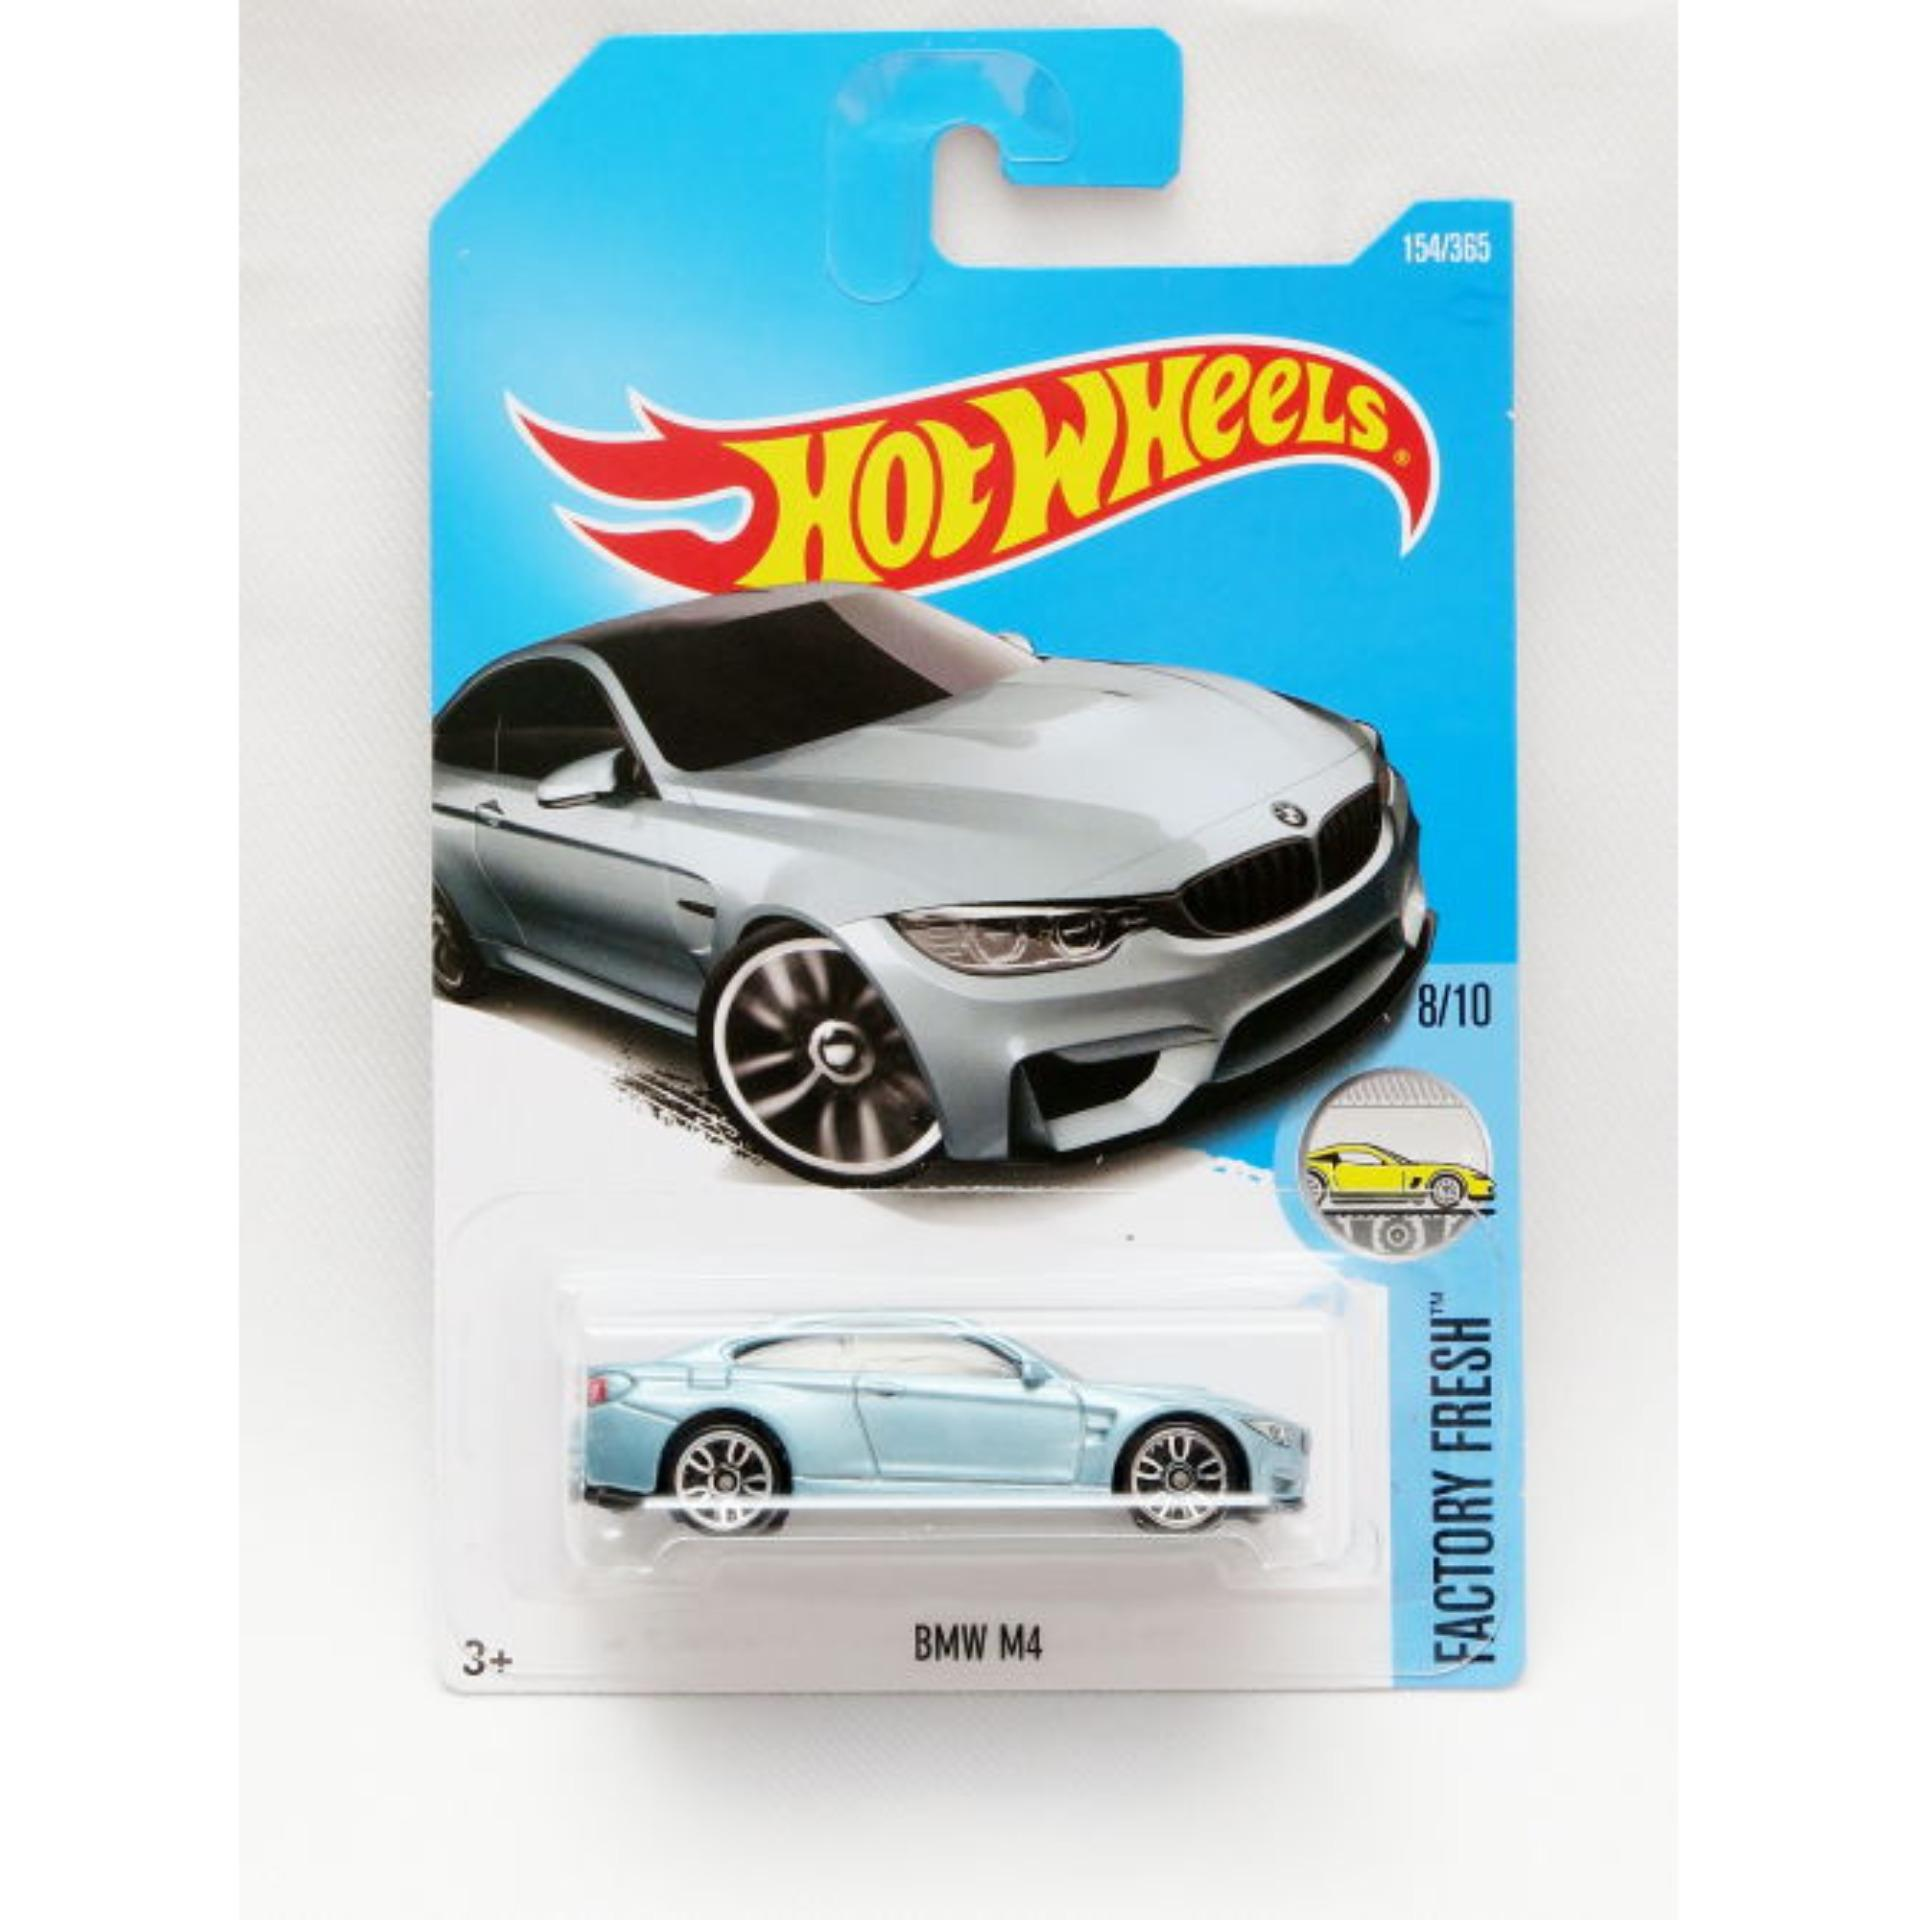 Flash Sale Hotwheels BMW M4 - biru muda